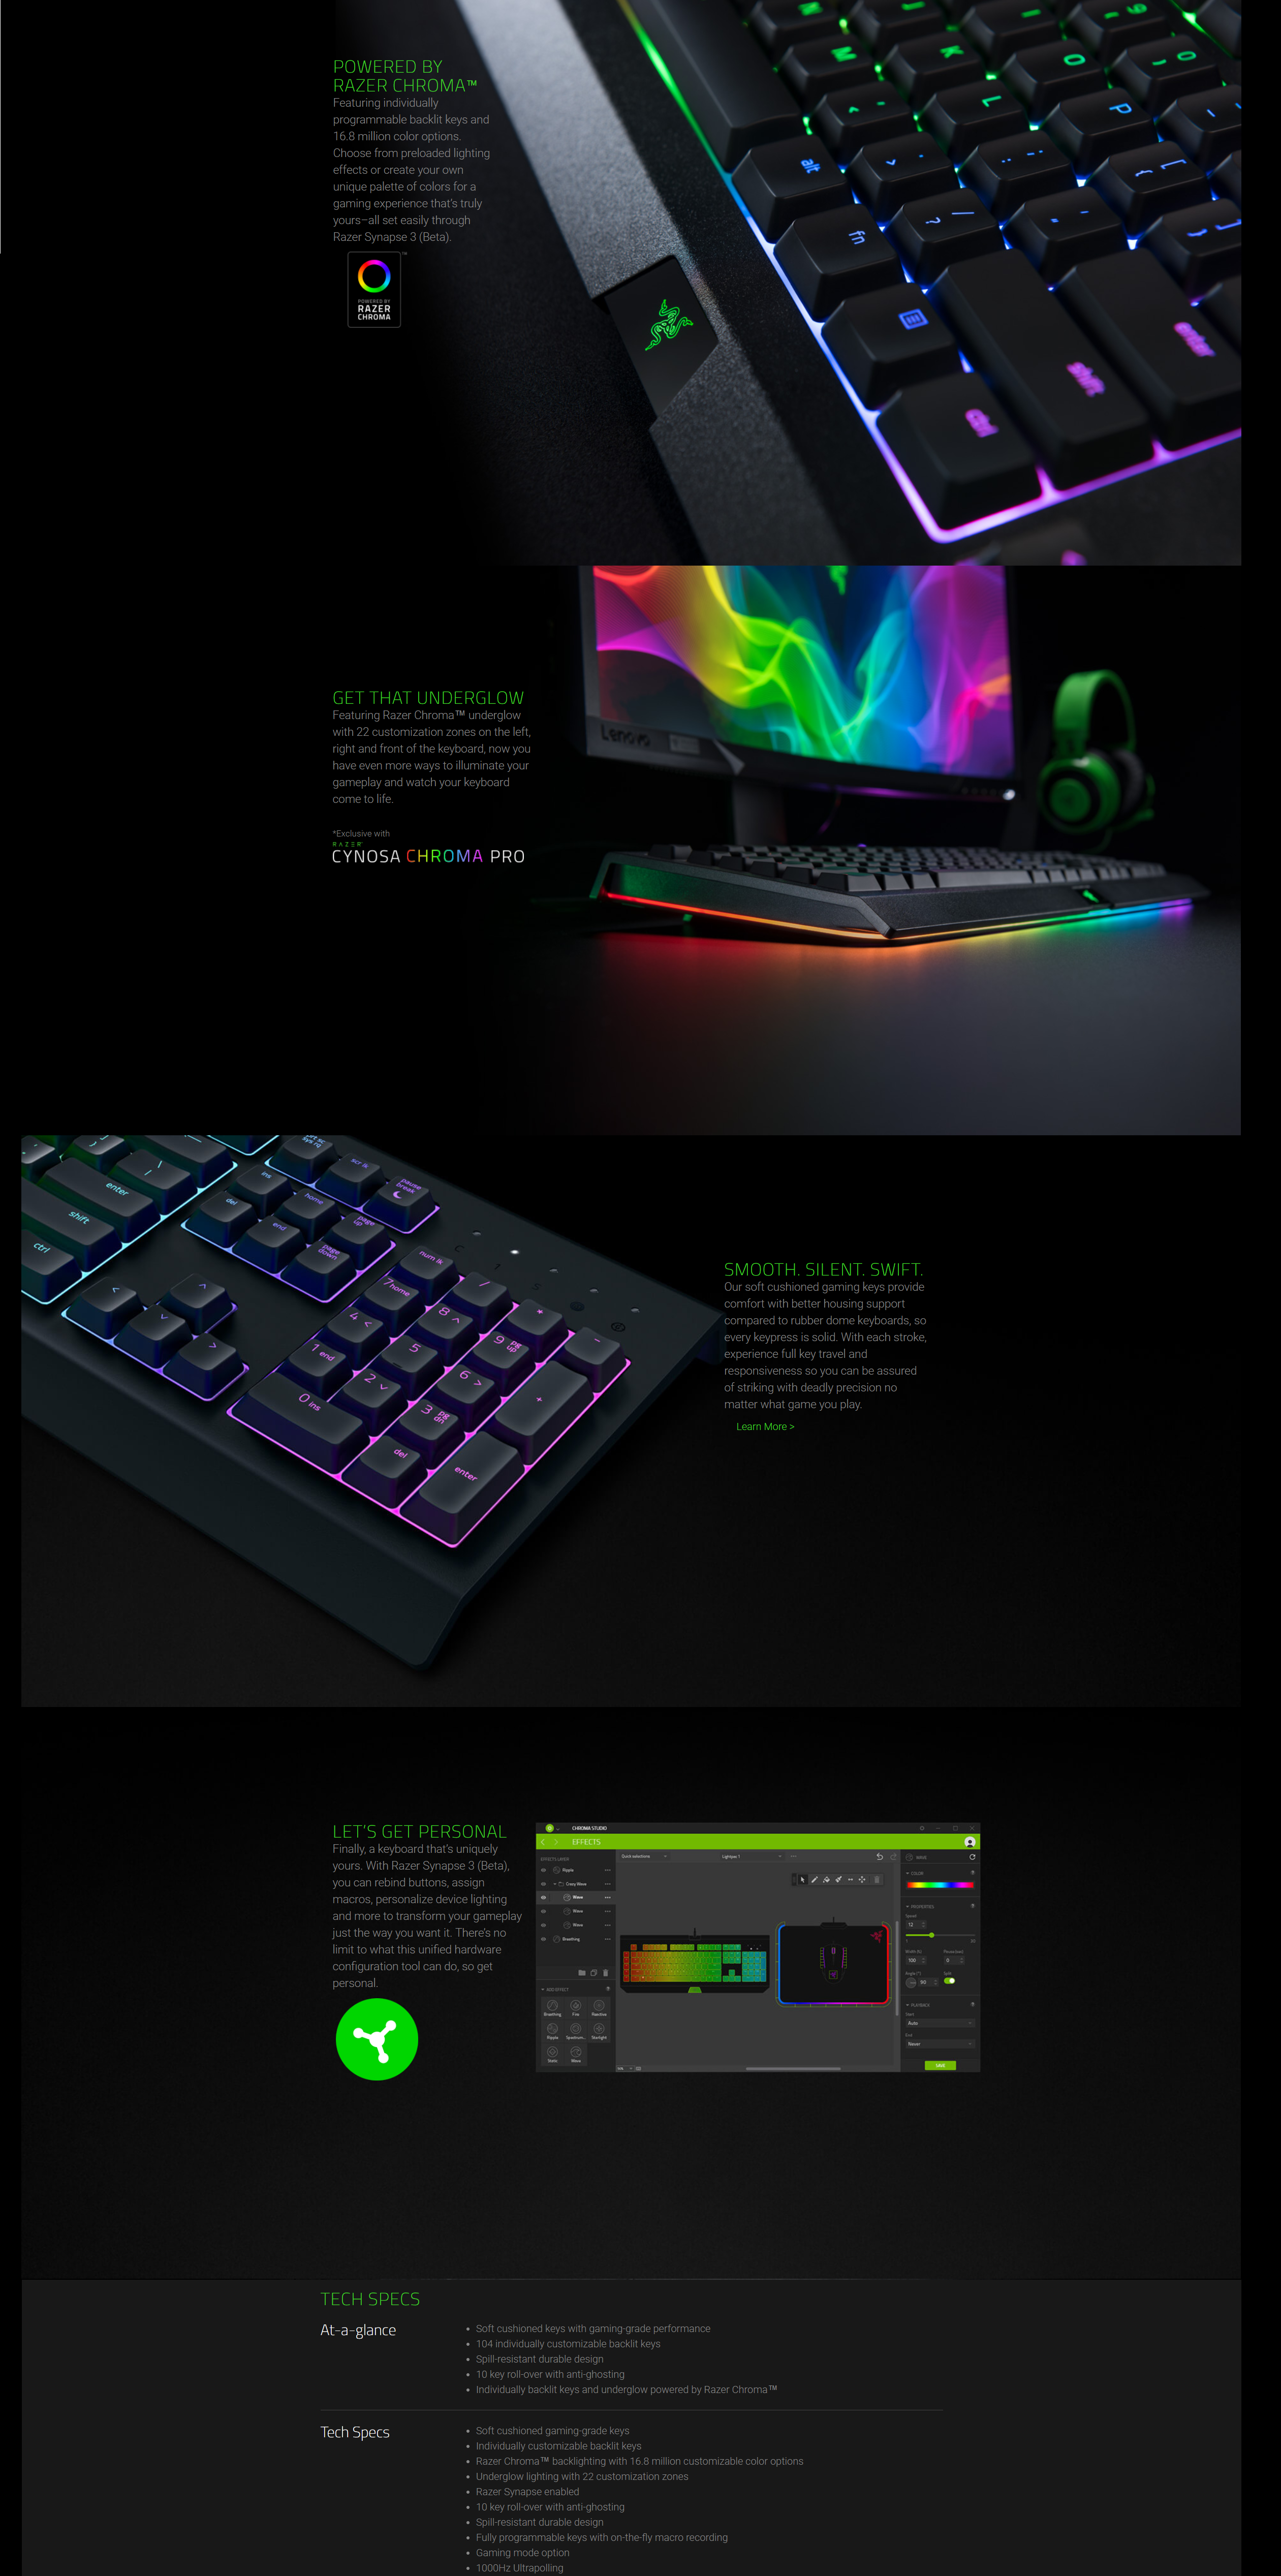 Details about Razer Cynosa Chroma Gaming Keyboard